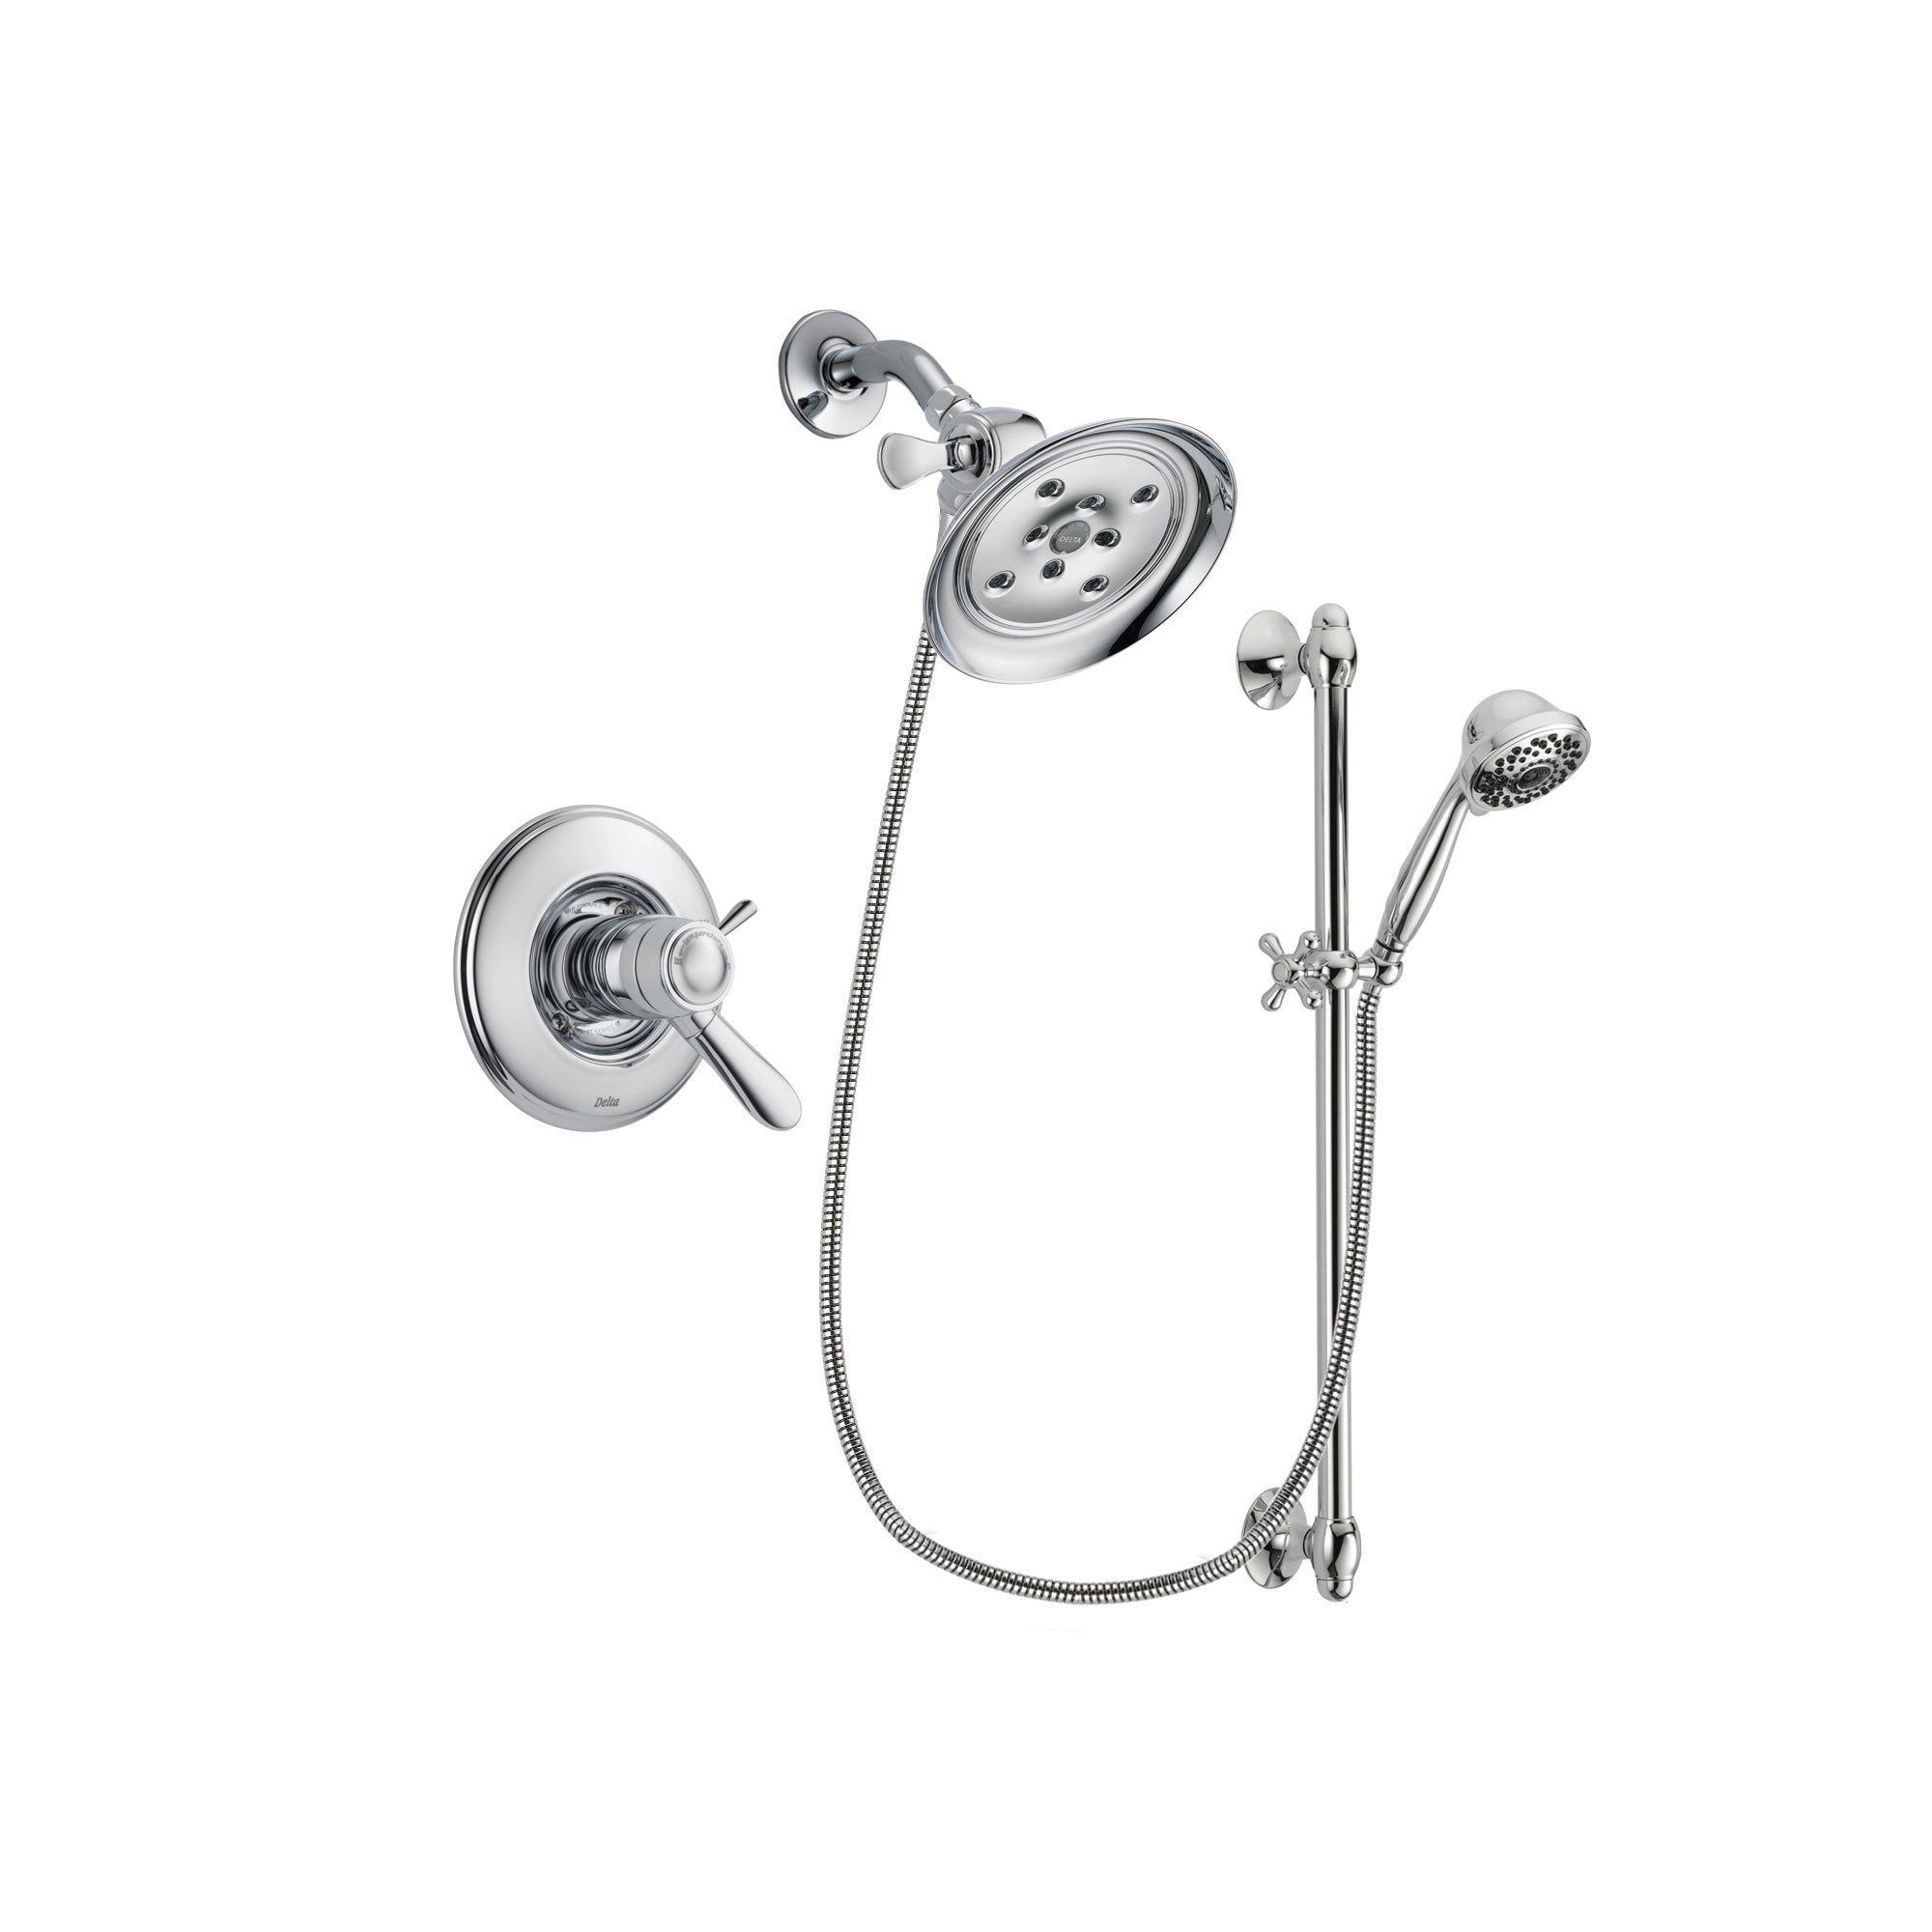 Delta Lahara Chrome Shower Faucet System w/ Shower Head and Hand Shower DSP0630V